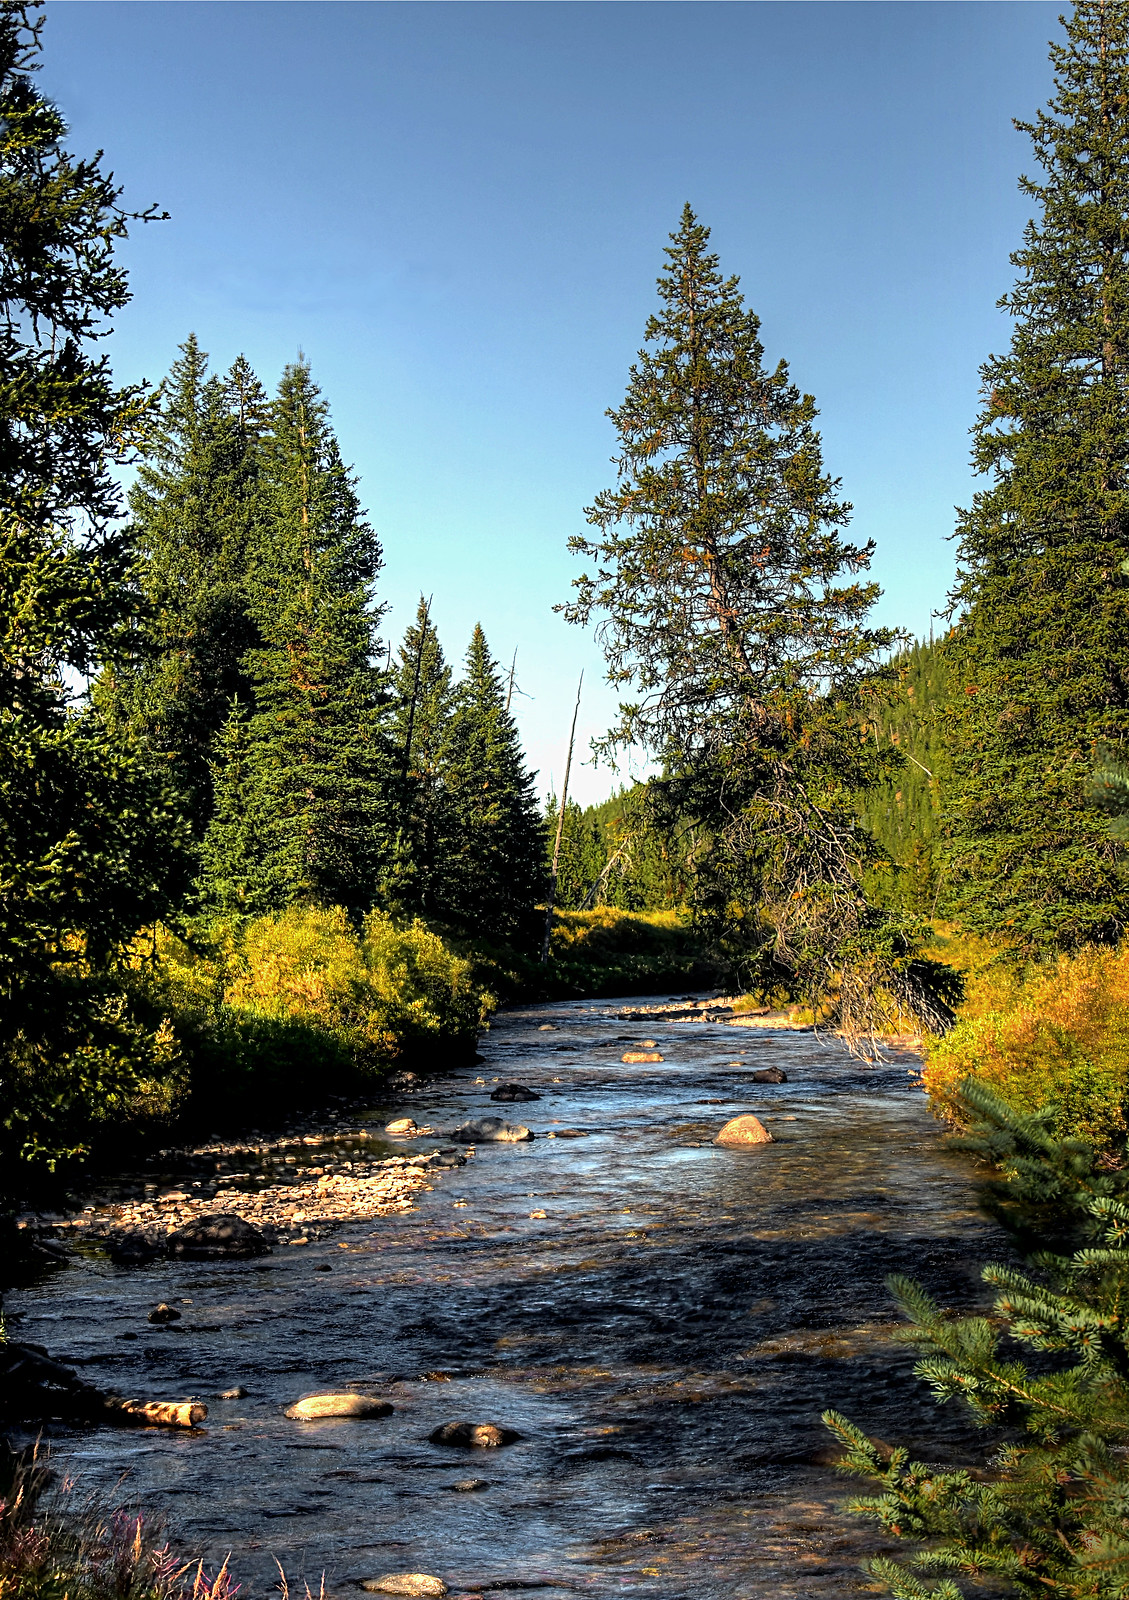 Fly fishing in yellowstone national park no fish fires for Fly fishing yellowstone